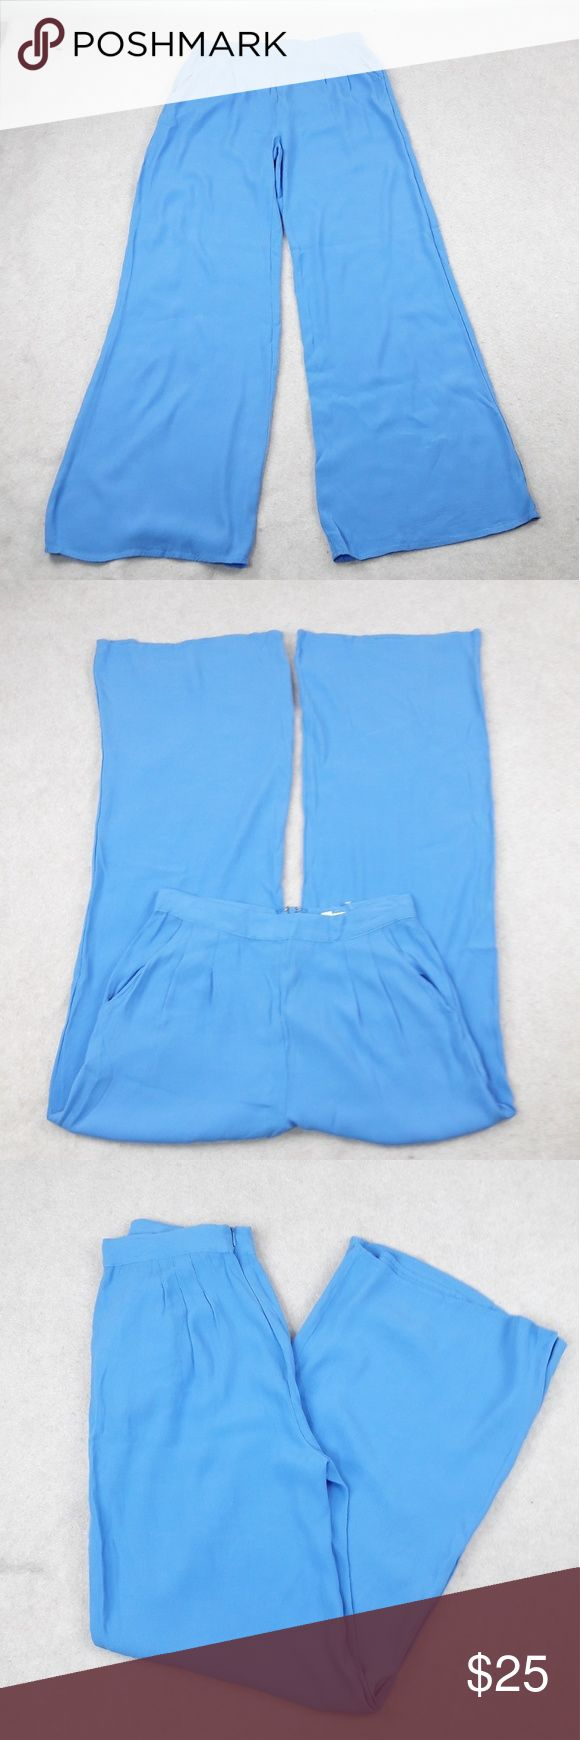 """Zipper Back Wide Leg Pants Honey Punch Womens Large Blue Trousers Wide Leg Dress Pant Career Work zipper back  Length:42"""" Waist:14"""" Inseam:31""""  Gently used with no flaws. Please see photos for exact details. Thank you for patronizing us. Honey Punch Pants Wide Leg"""